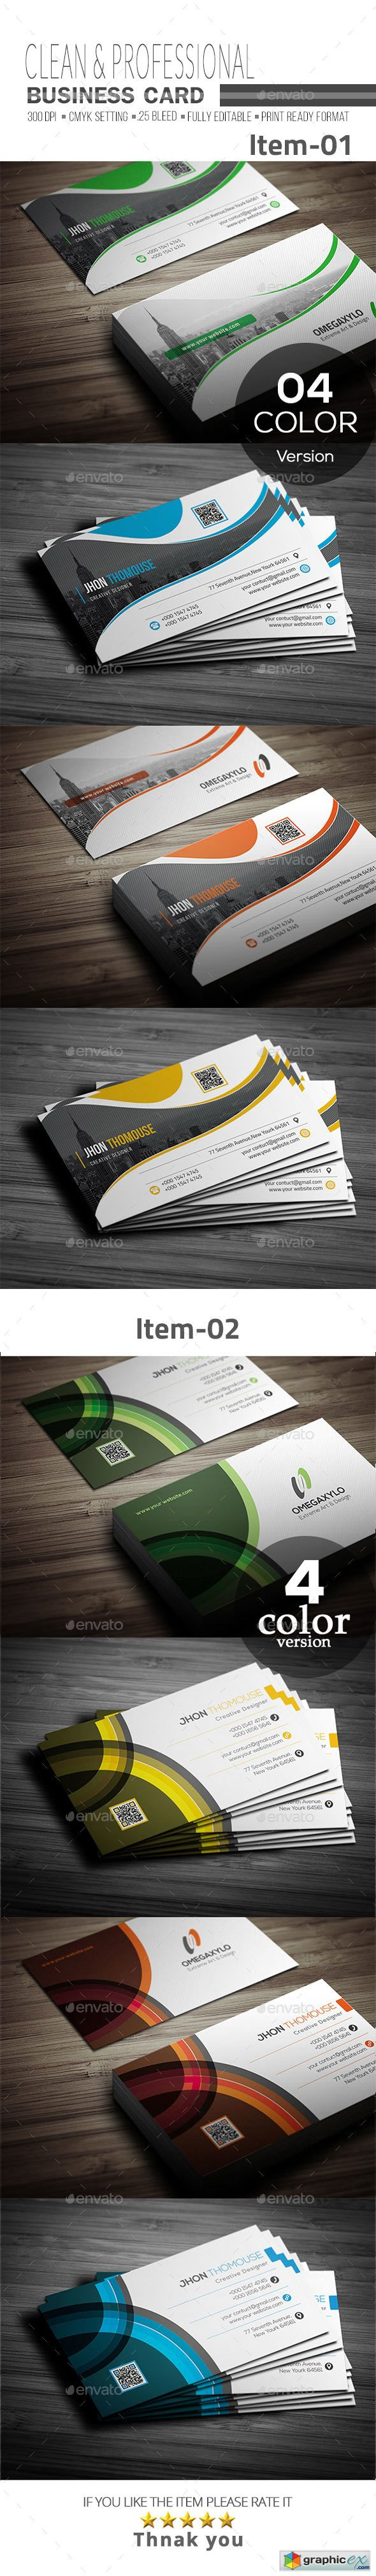 Business Card Bundle 2 In 1 20657894